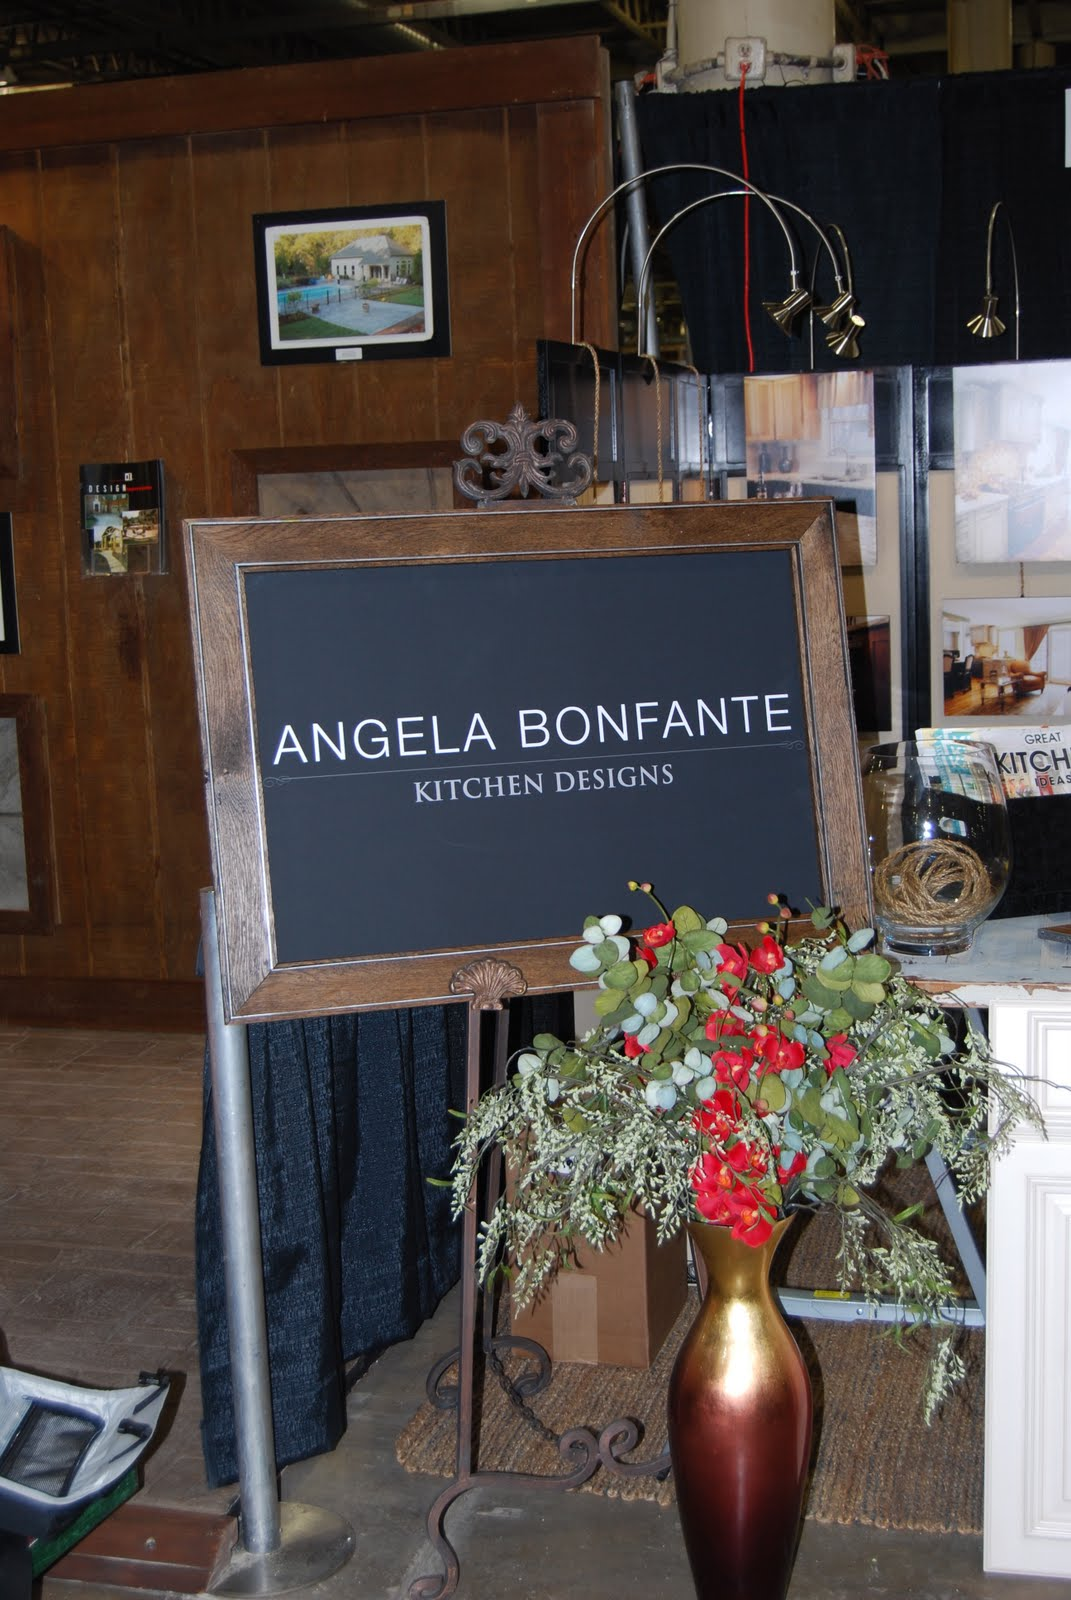 Angela Bonfante Kitchen Designs Of Angela Bonfante Kitchen Designs September 2011